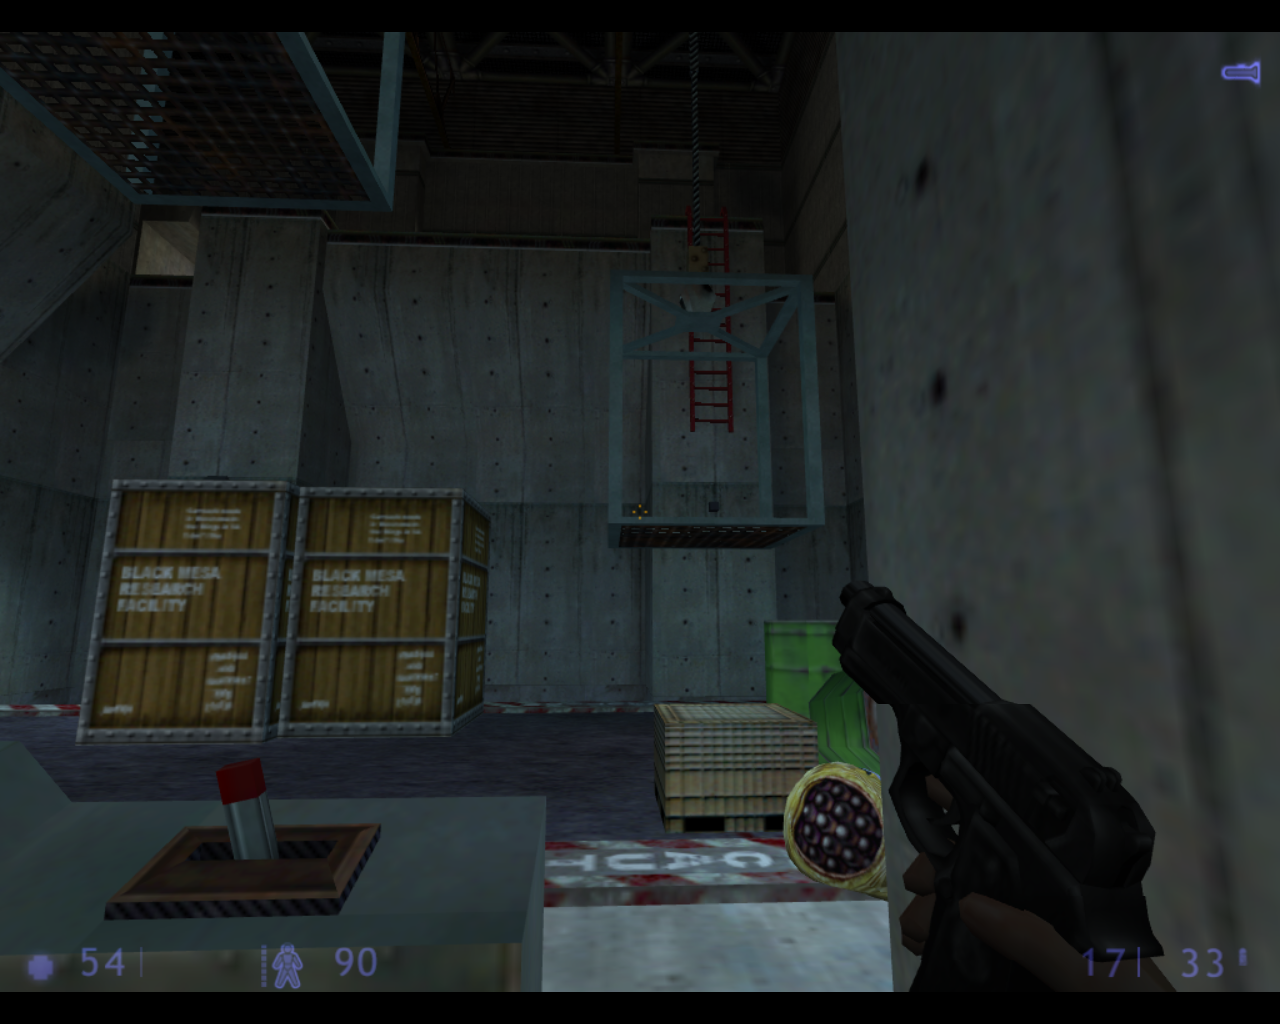 Half-Life: Blue Shift Linux I need to position the crates and platforms to get to that ladder.